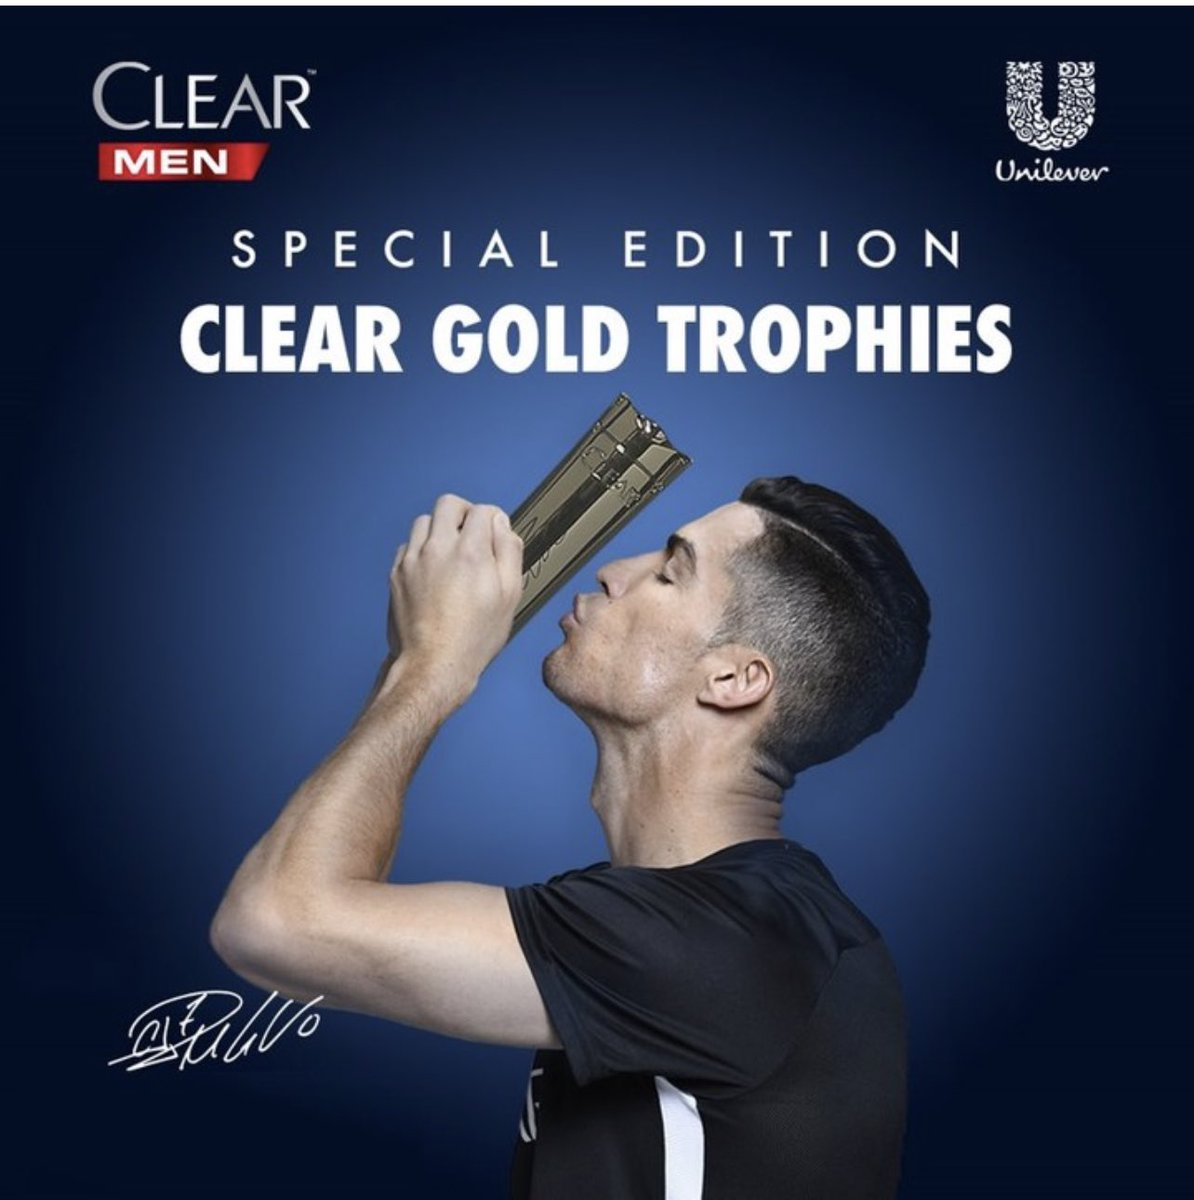 ⁦@Cristiano⁩  The wait is over. Congratulations to the 5 lucky winners! Head over to ⁦@clearhaircareJP⁩ to find out who won! #legendshampoo #Madelegend #ClearMen